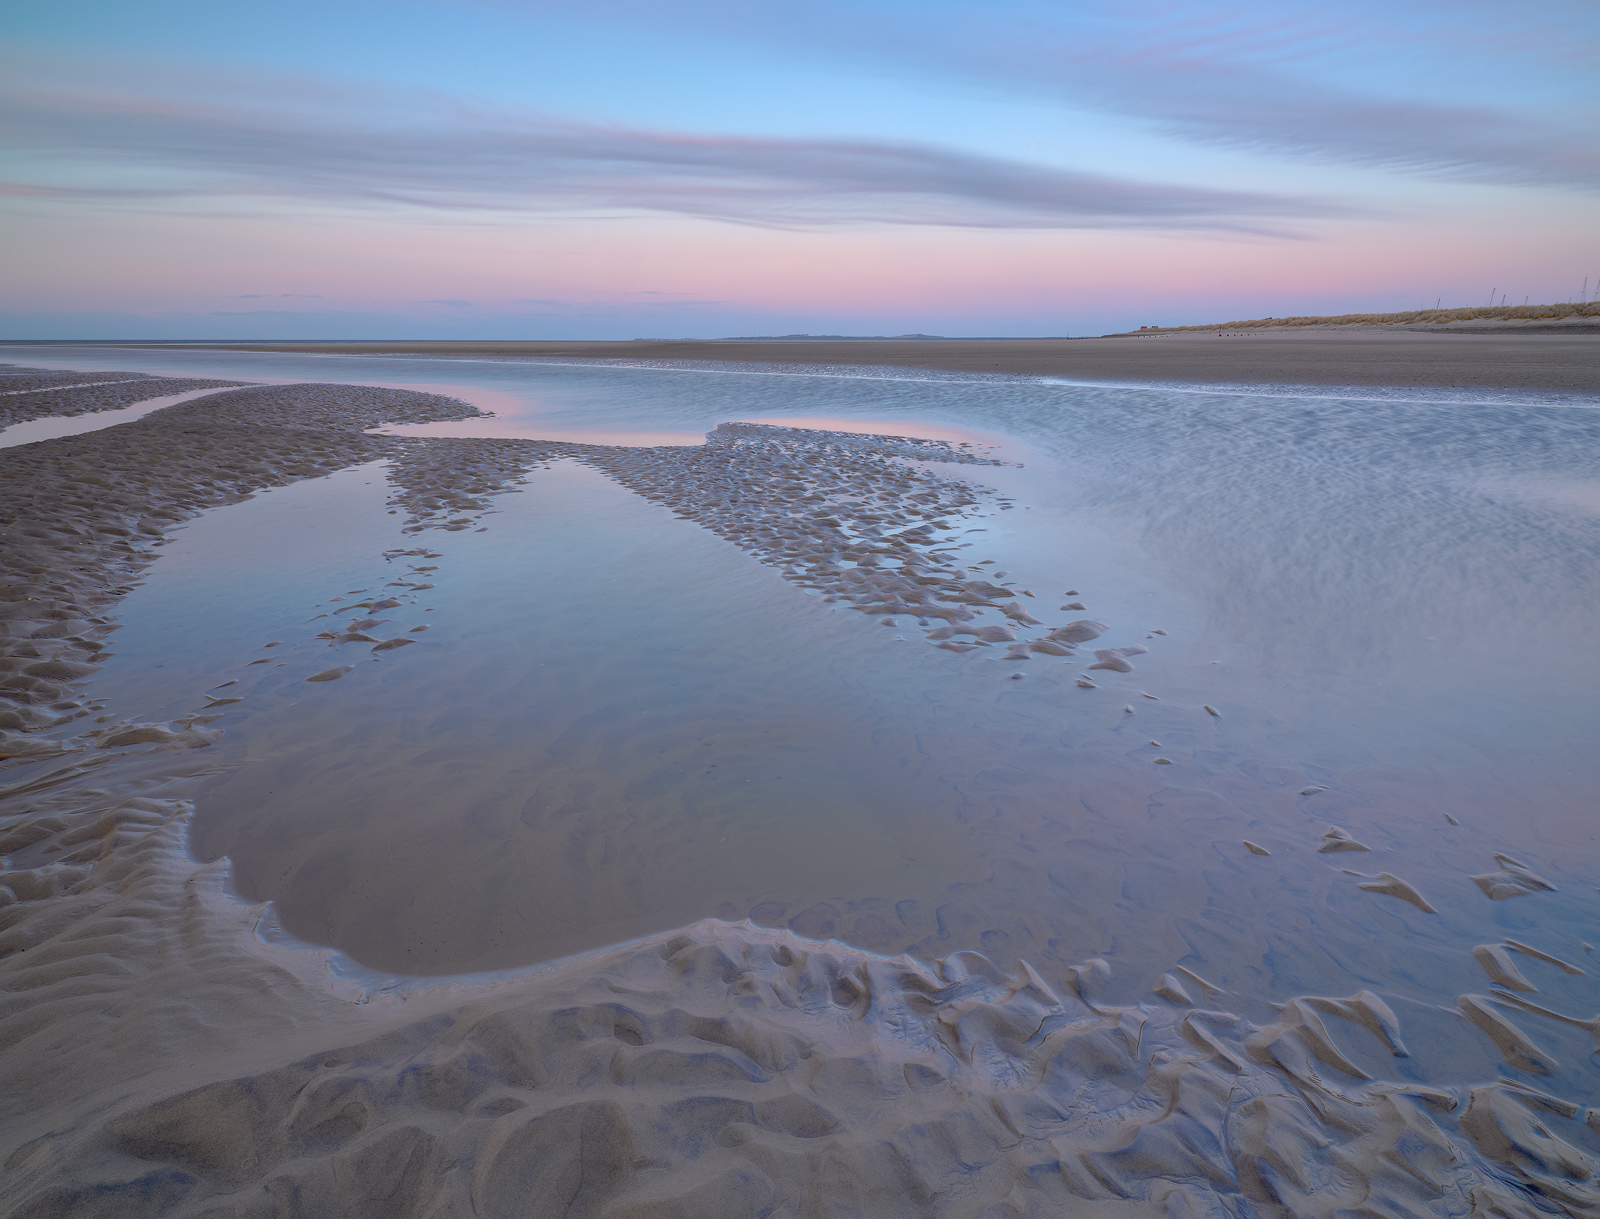 soft pastel colours of pink and blue at dusk on the beach at Findhorn in Moray, Scotland.